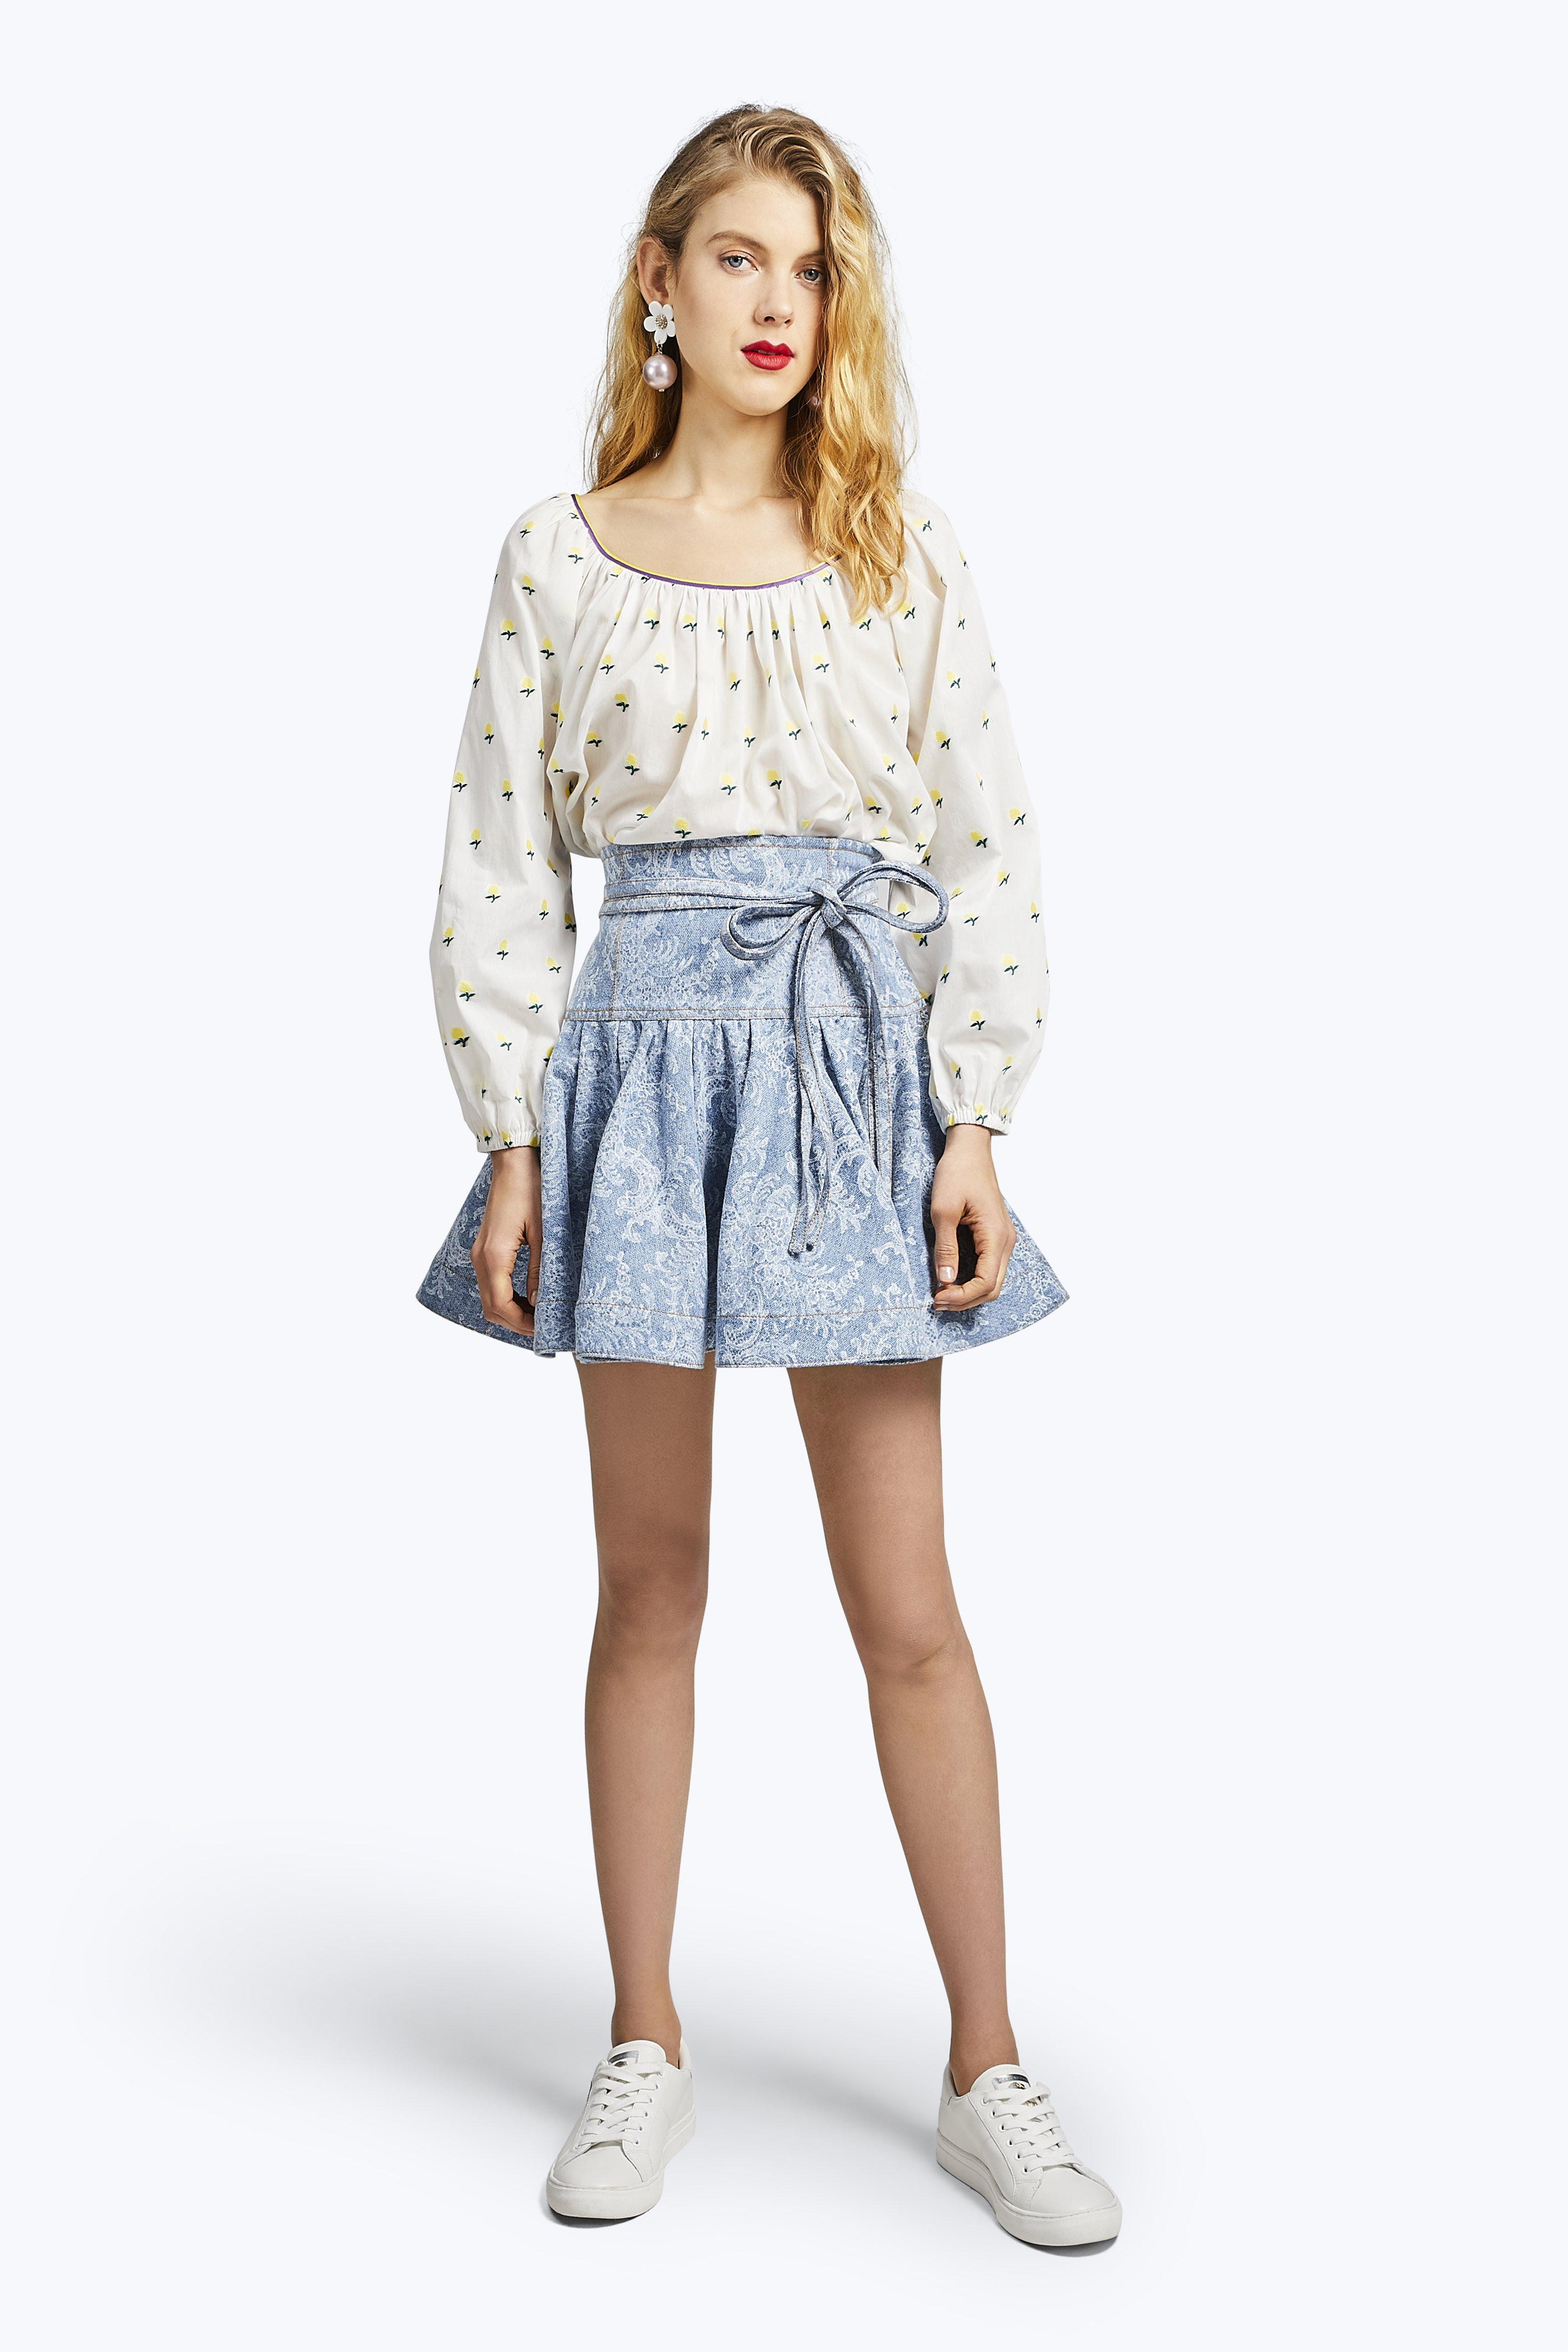 Marc Jacobs Lace Printed Ruffle Denim Skirt In Indigo Lace